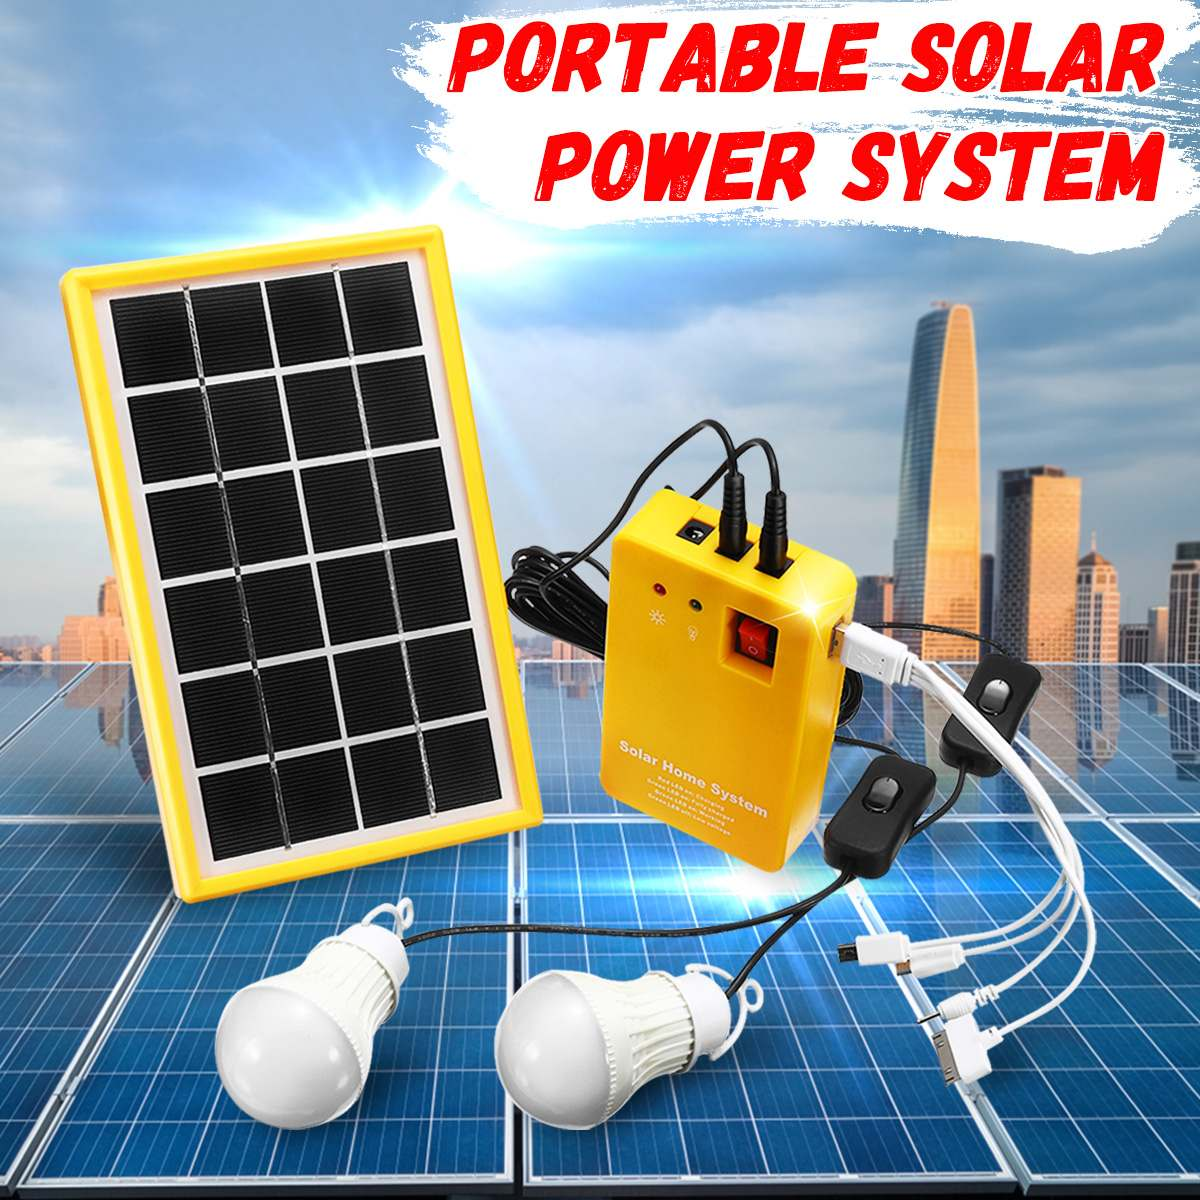 5V Solar Power Panel Generator Kit USB Charger Home System with 3 LED Bulbs Light Indoor/Outdoor Lighting Over Discharge Protect5V Solar Power Panel Generator Kit USB Charger Home System with 3 LED Bulbs Light Indoor/Outdoor Lighting Over Discharge Protect